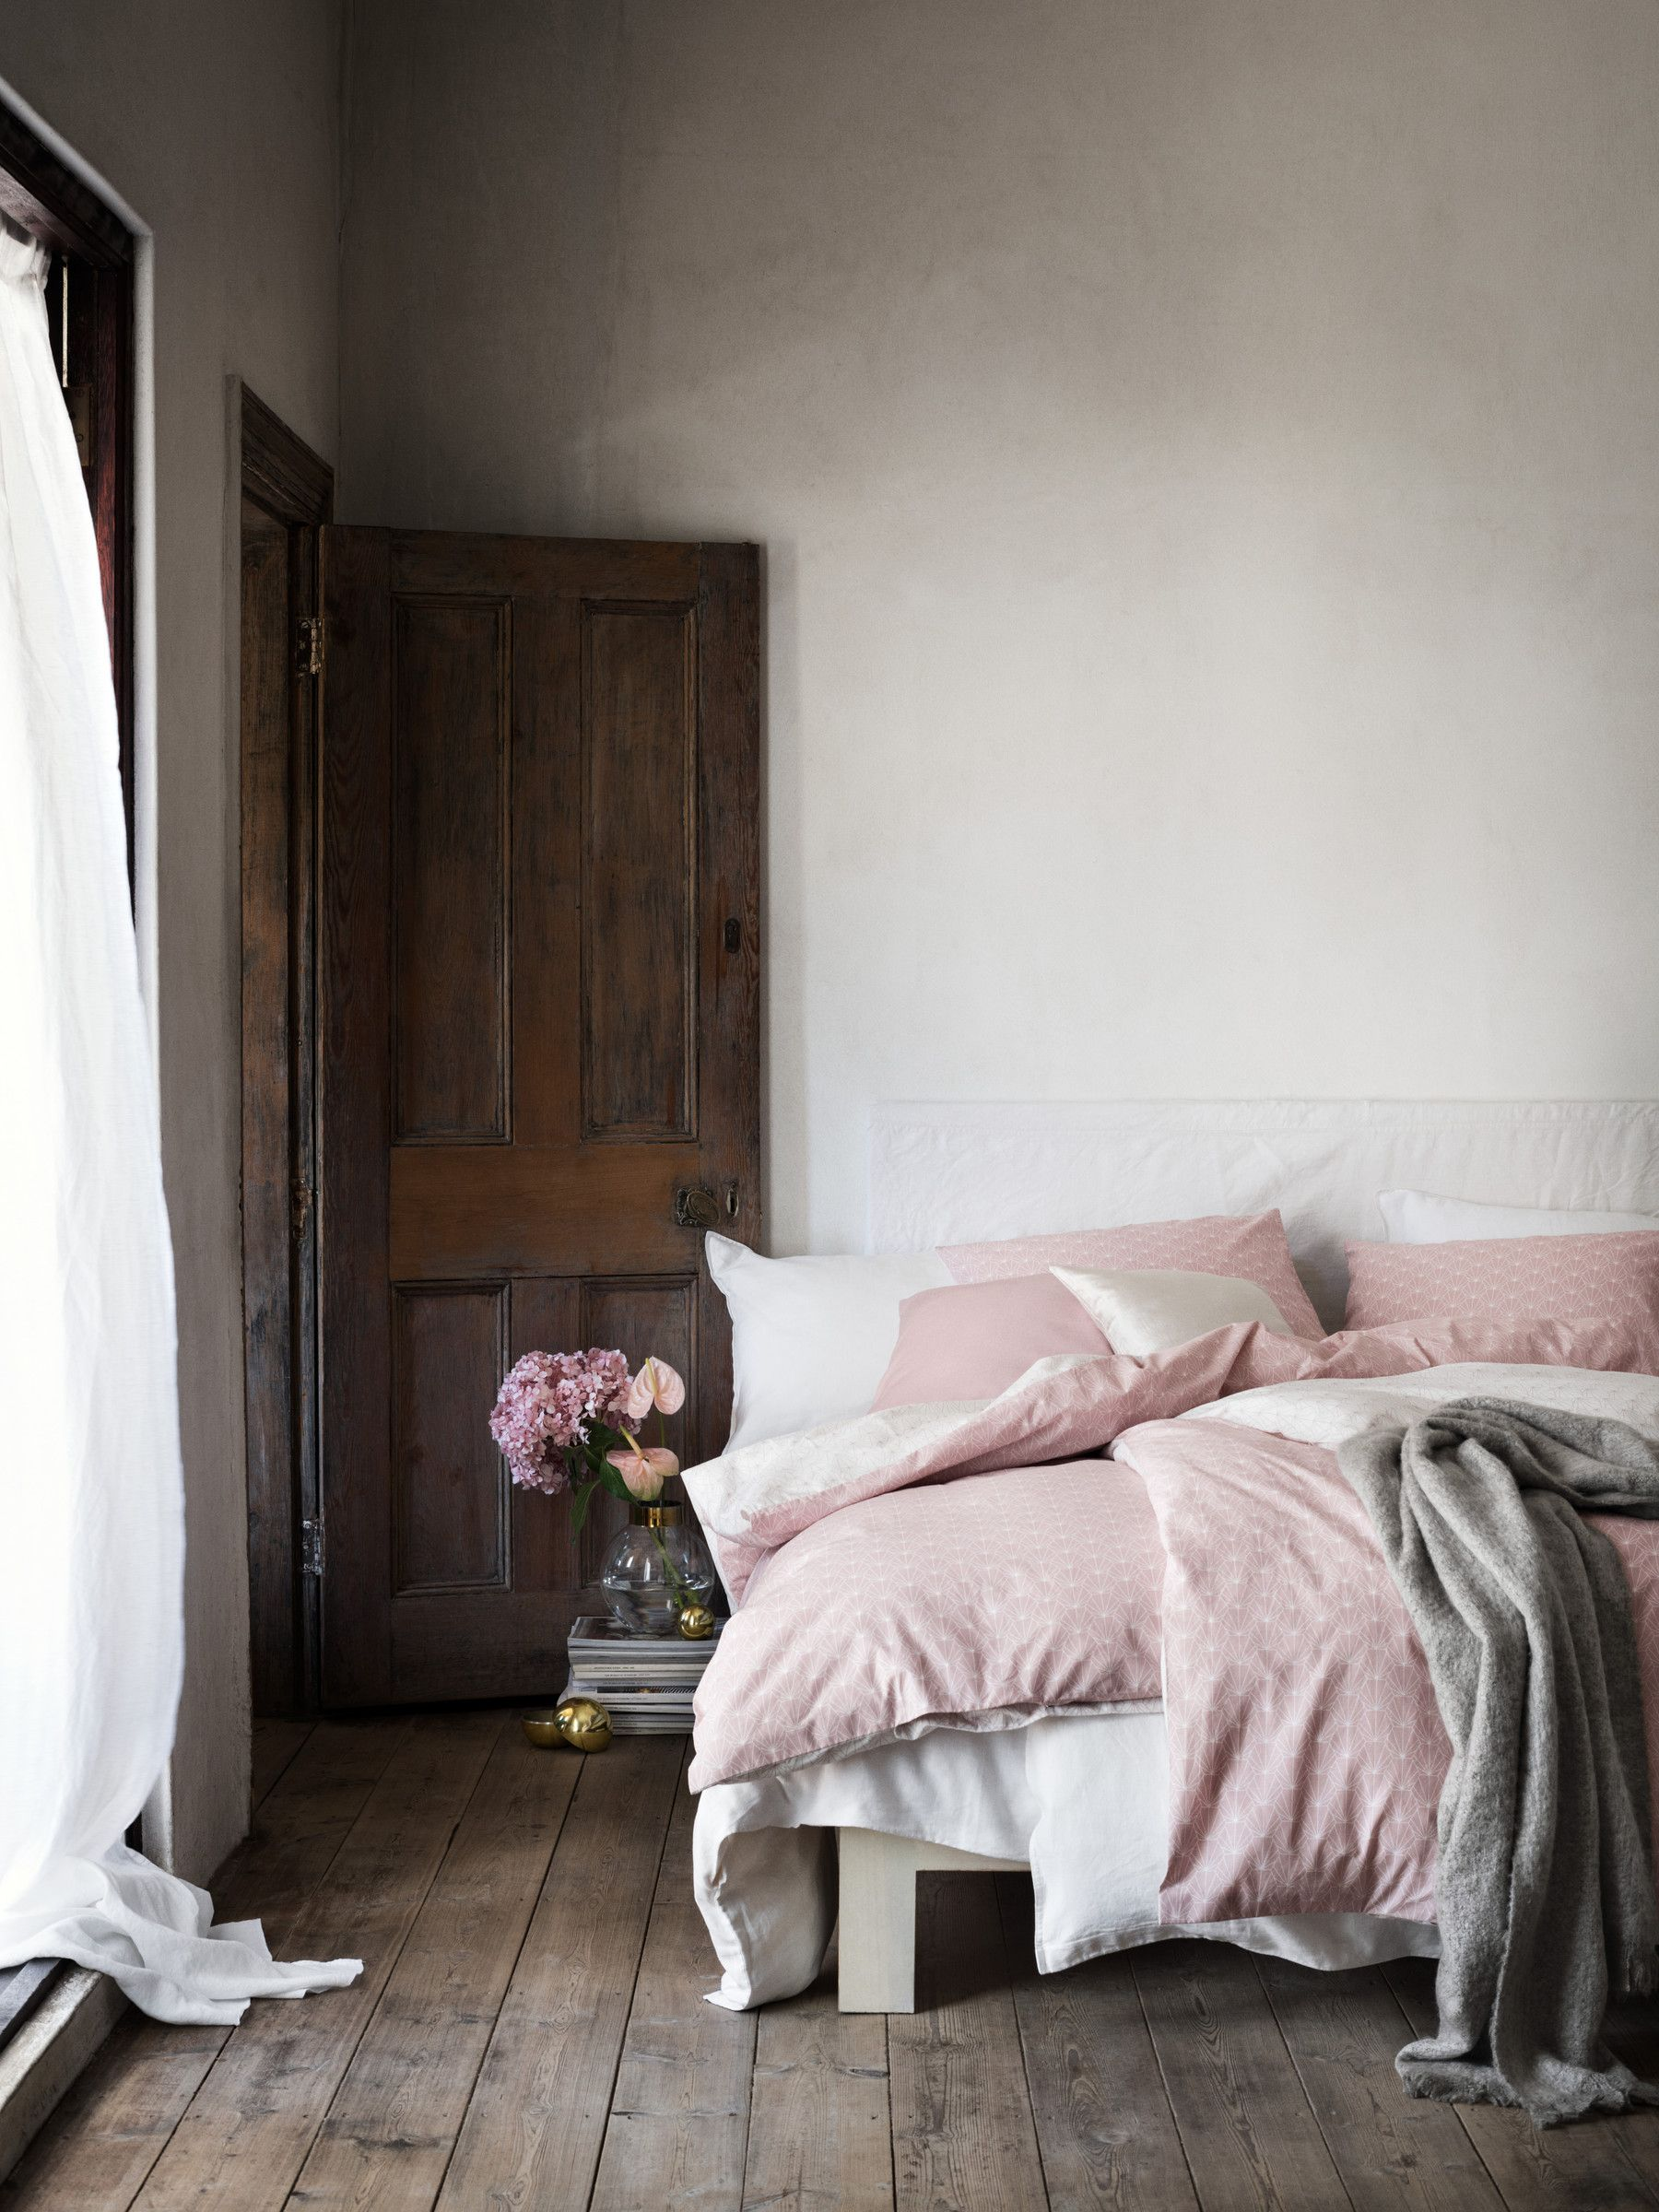 Best Bedroom With Soft Pink Bedding By H M Home Shop The Look 640 x 480